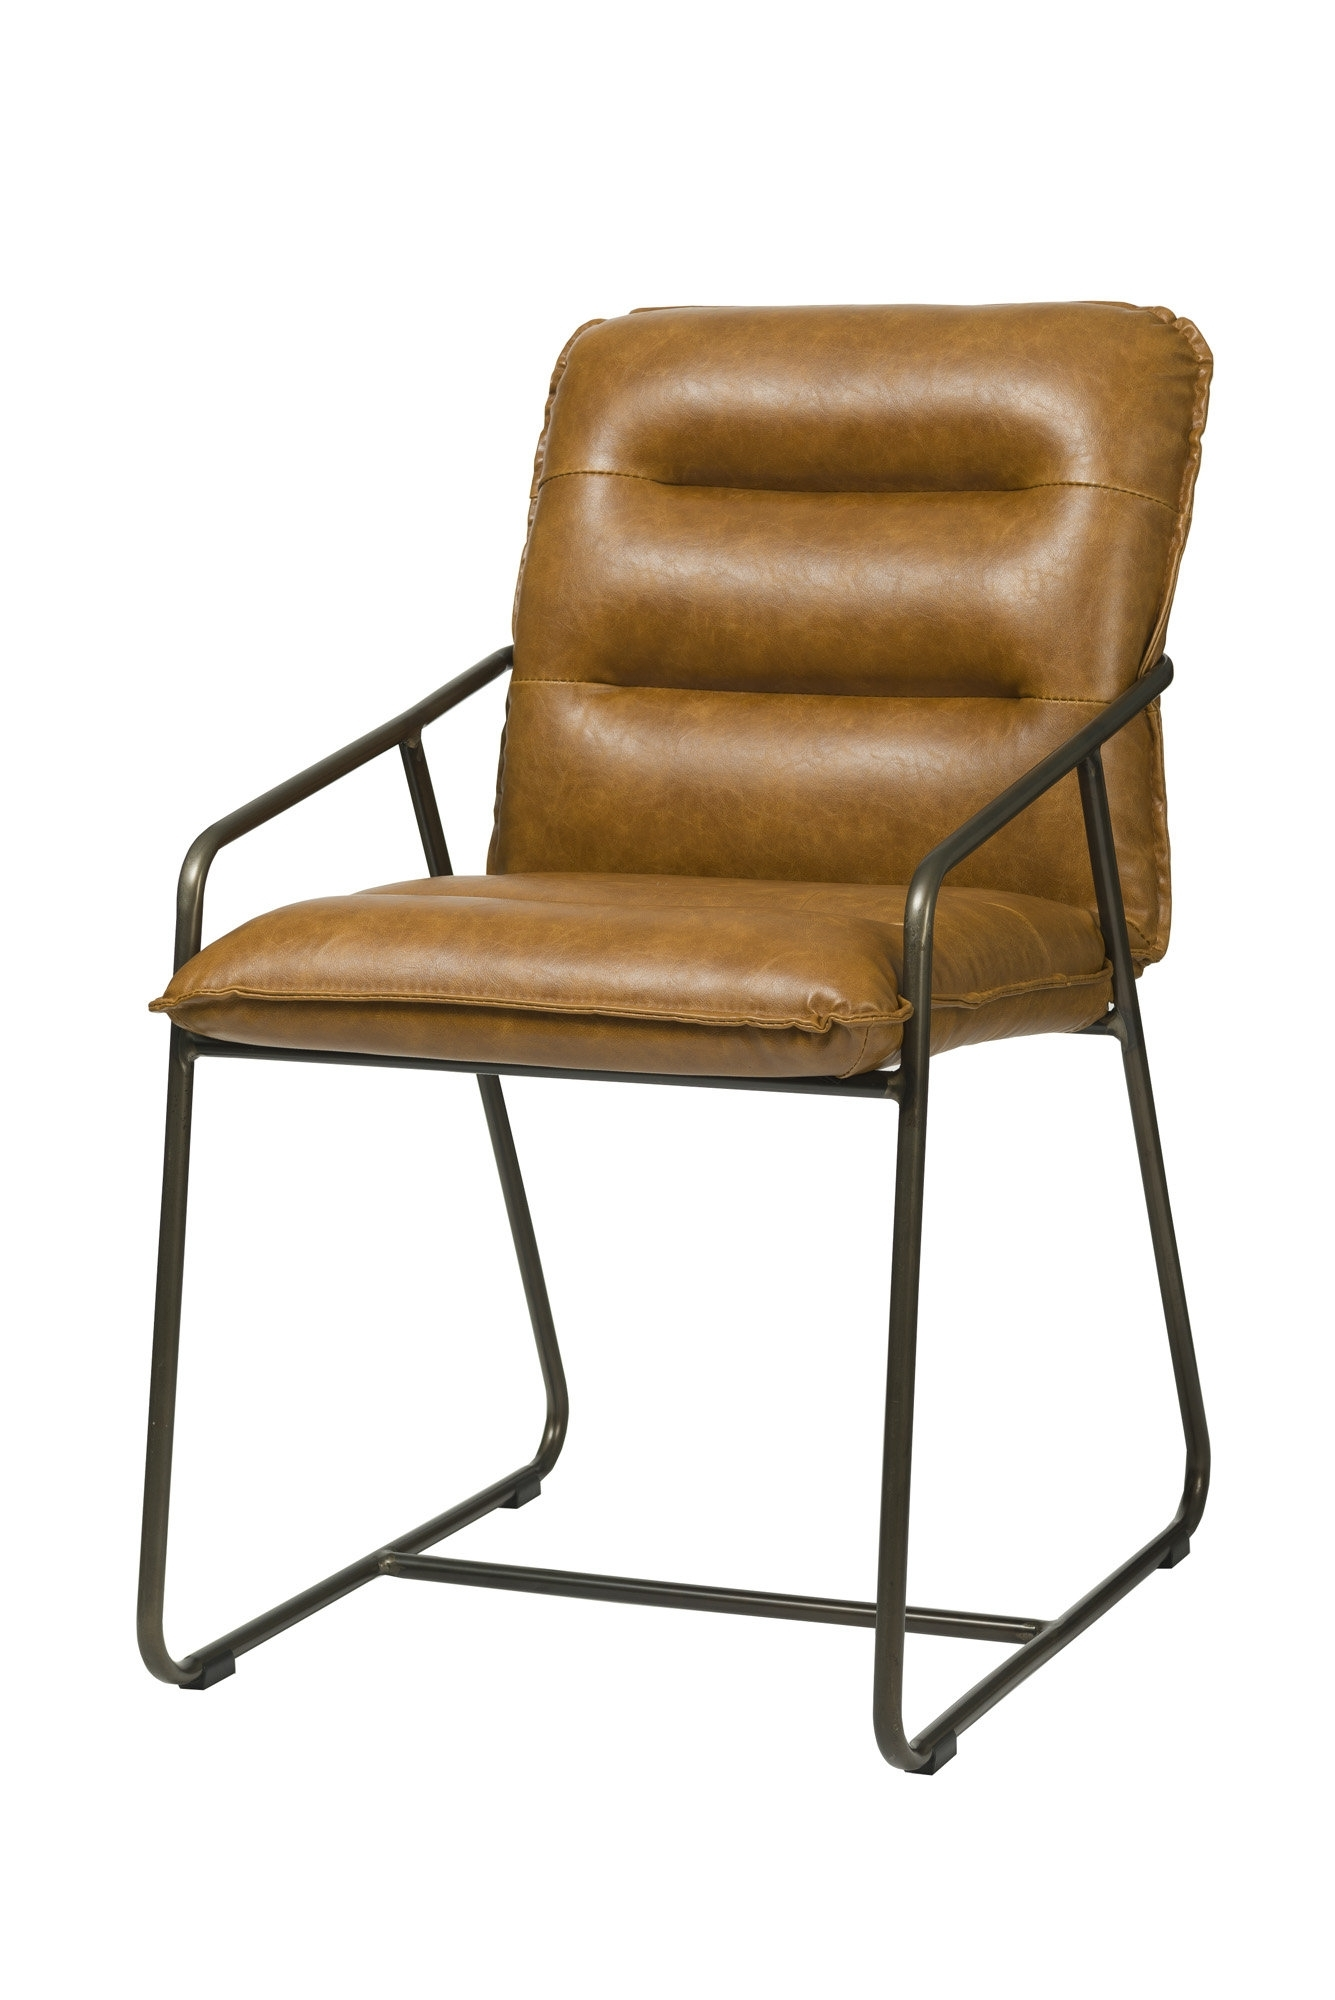 Lh Imports Within Most Up To Date Cintra Side Chairs (#15 of 20)